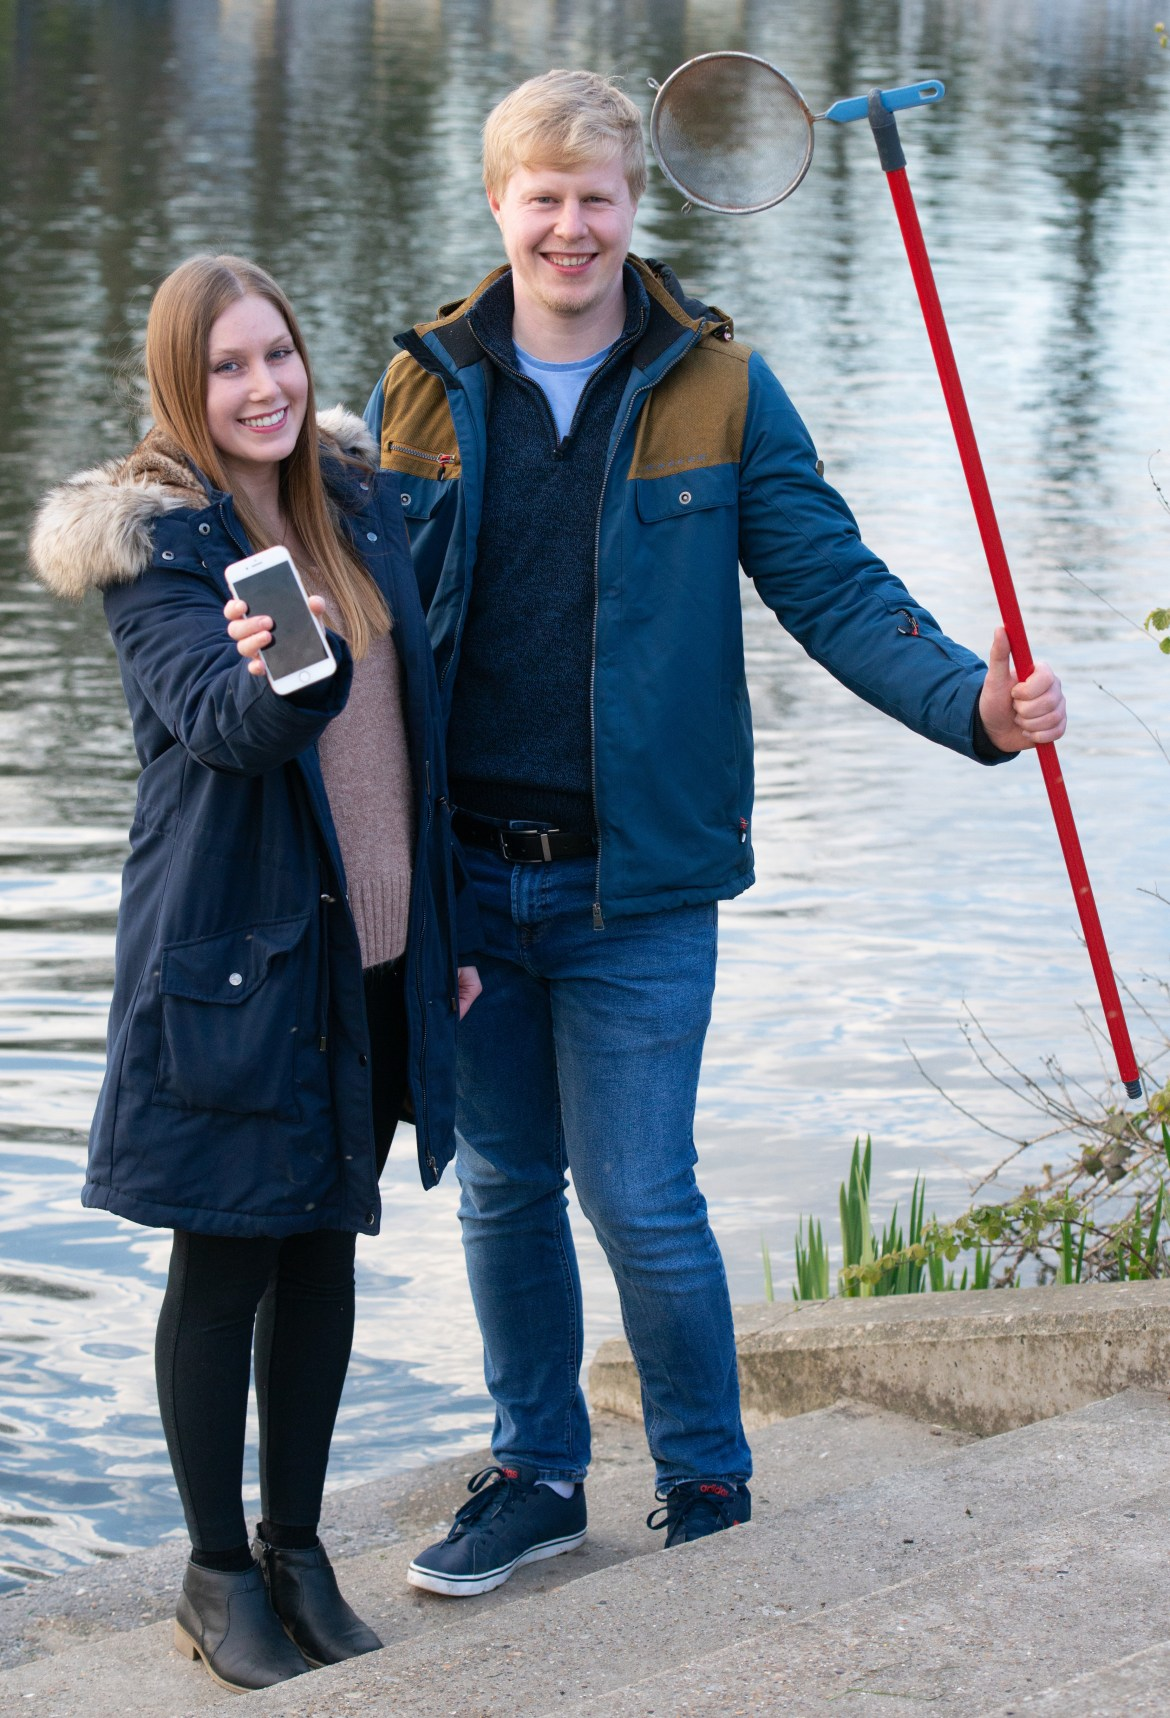 Thayse Bussolo-Vieira, with fiancé James Tongue, found her brand new iPhone 8 that she dropped in the Thames two months earlier and was amazed it still worked